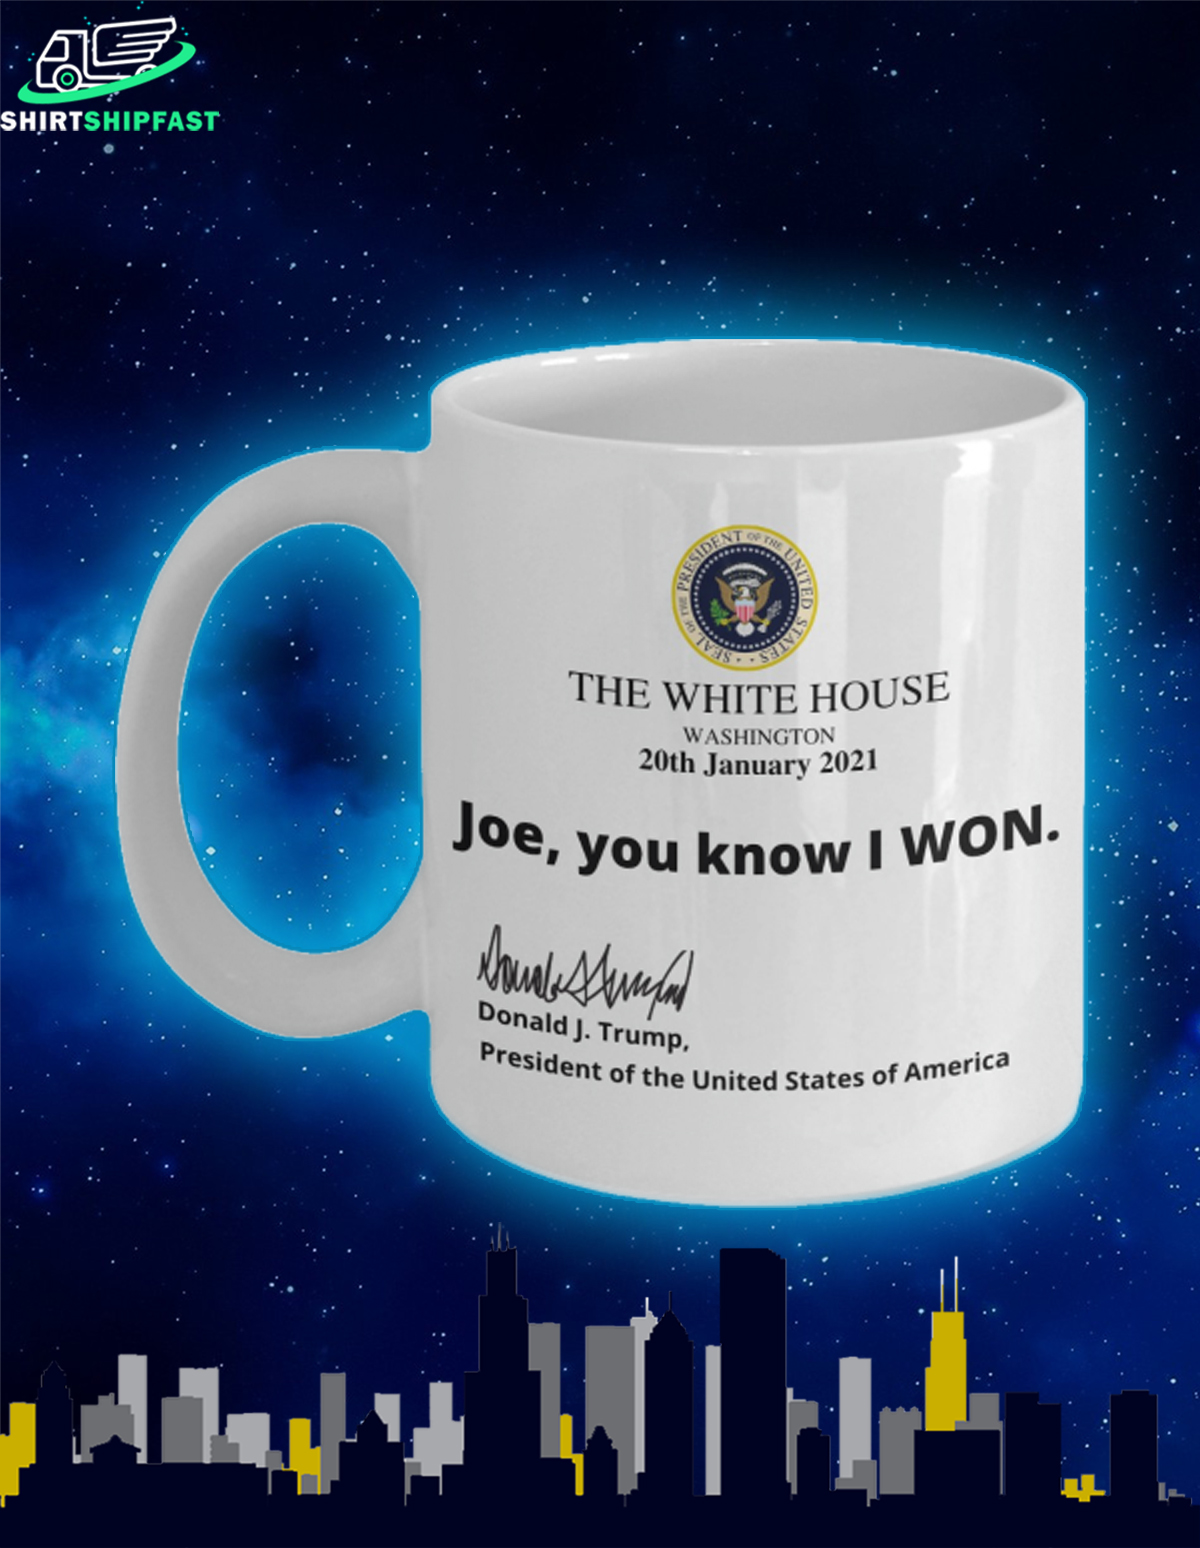 The White House Washington 20th January 2021 Joe you know I won mug - Picture 3